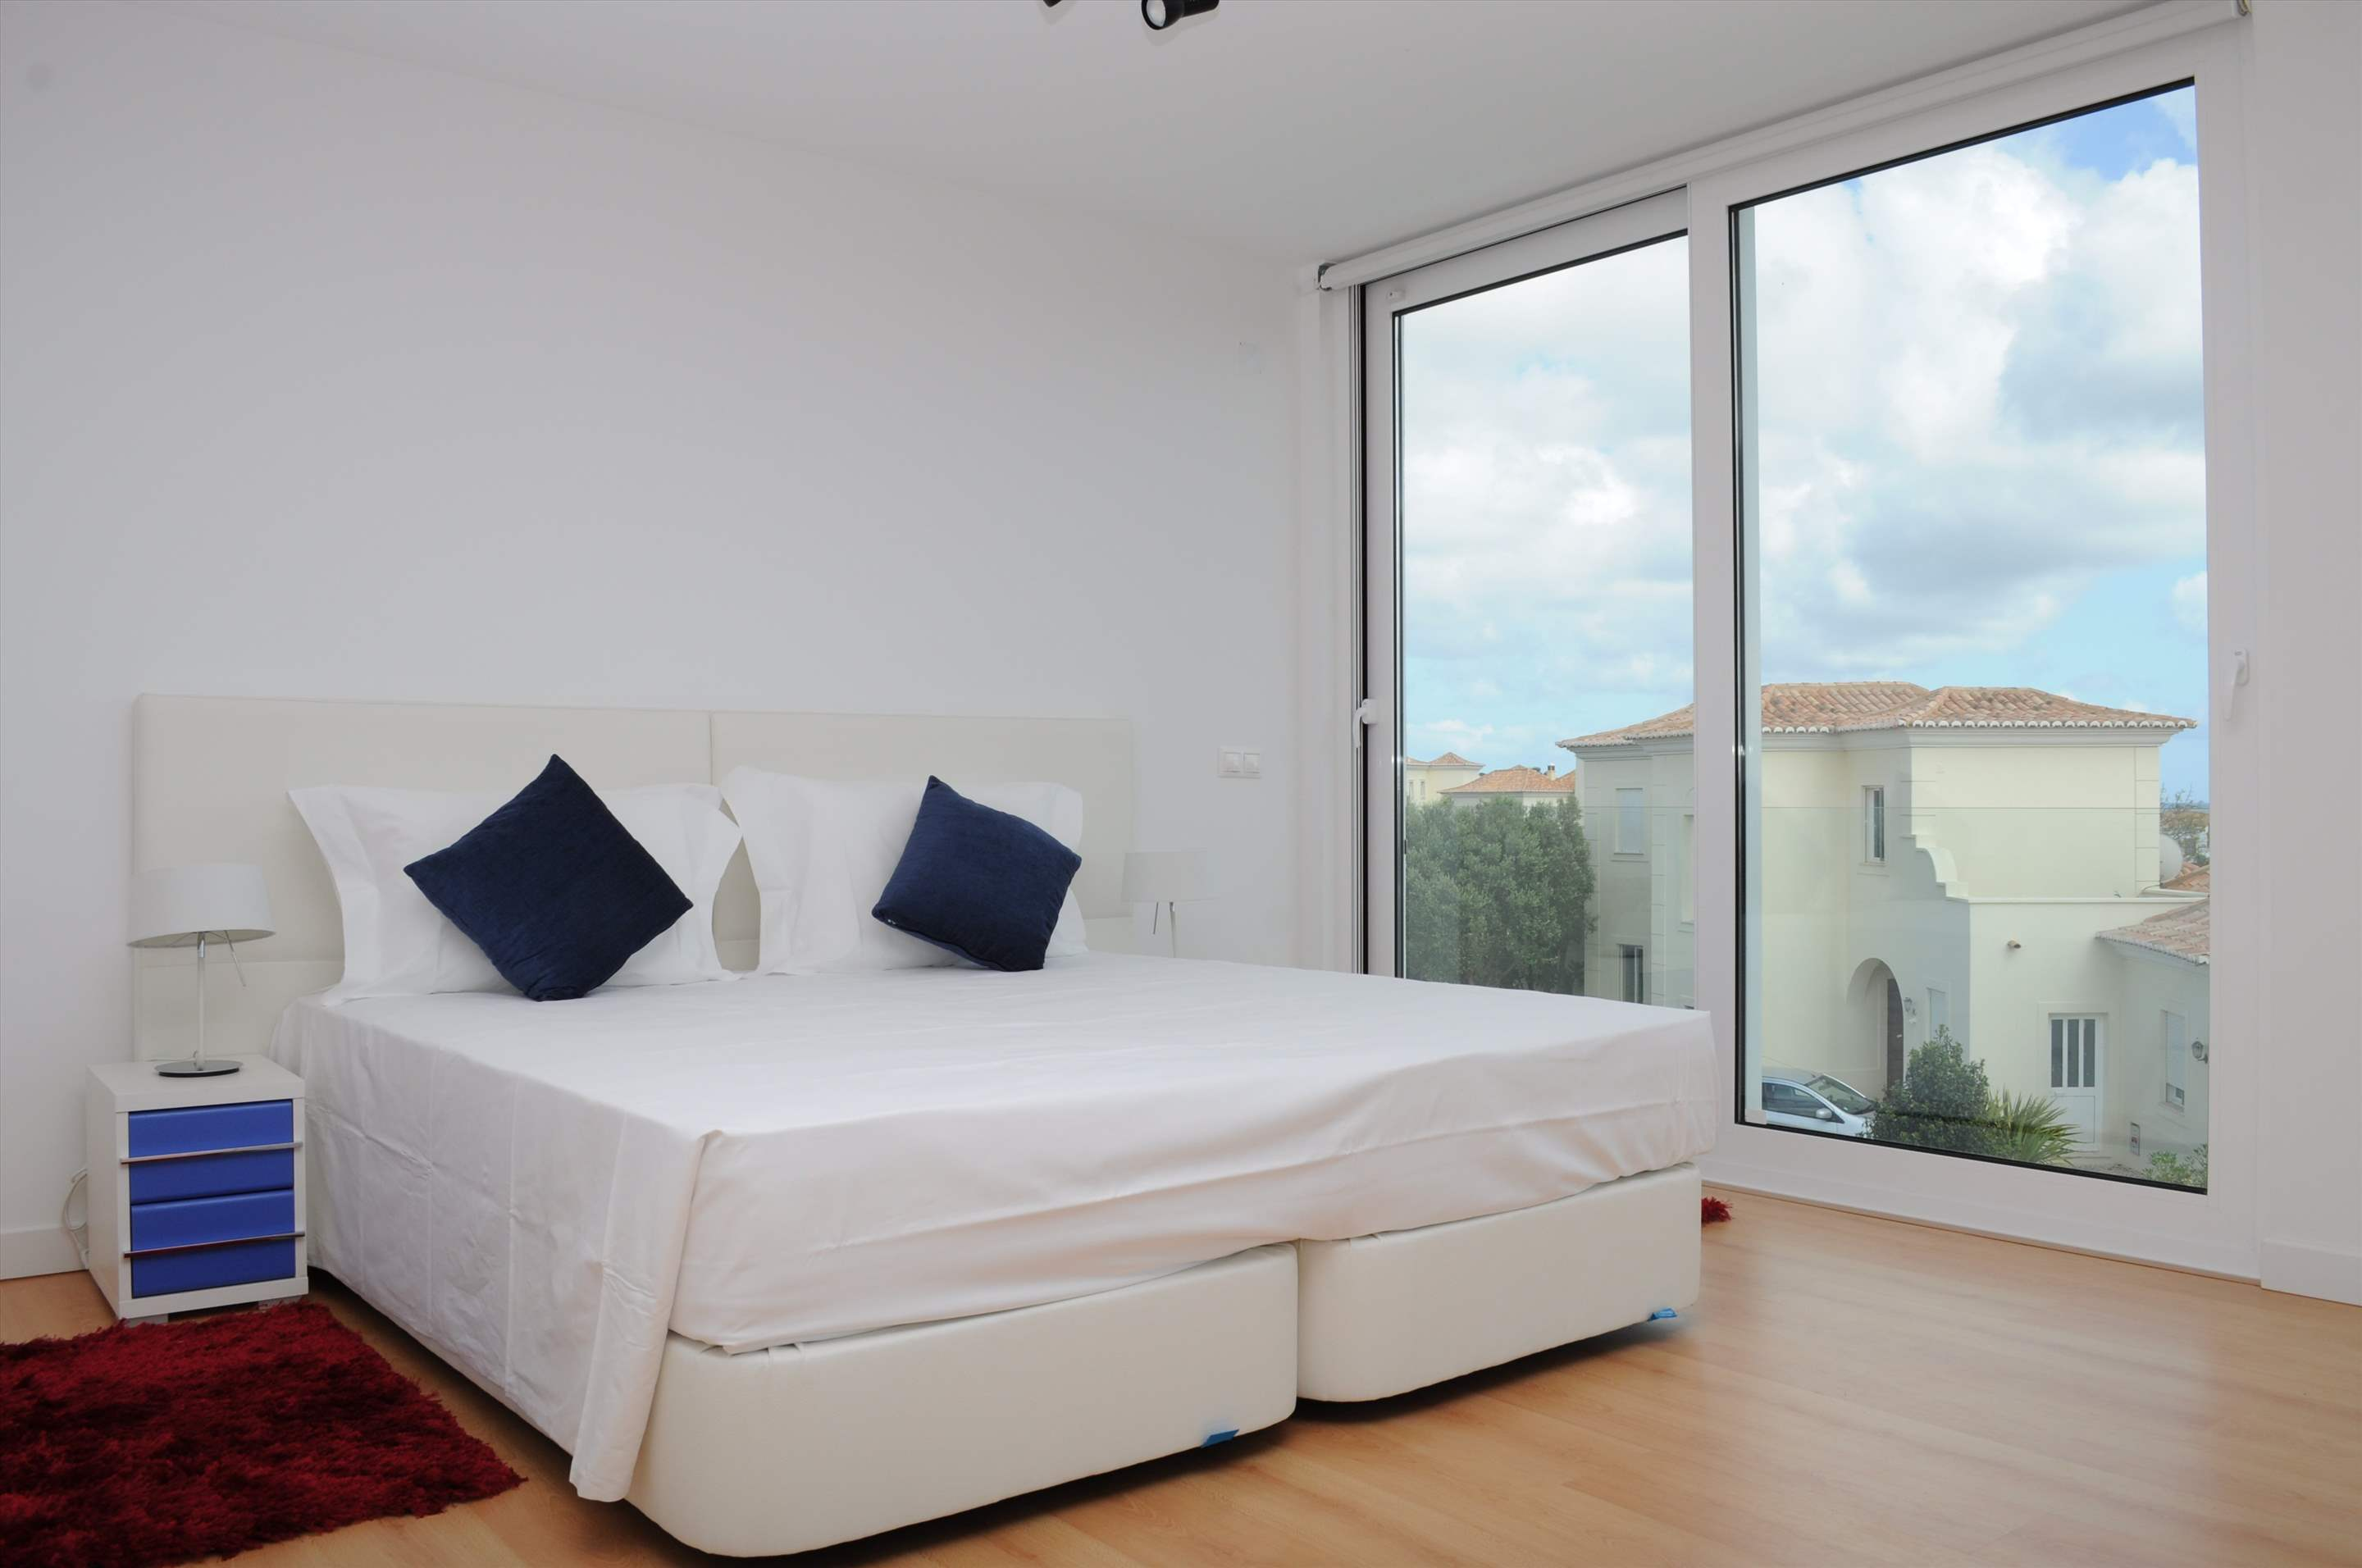 Martinhal Luxury Villa No.6, 3 bedroom villa in Martinhal Sagres, Algarve Photo #9